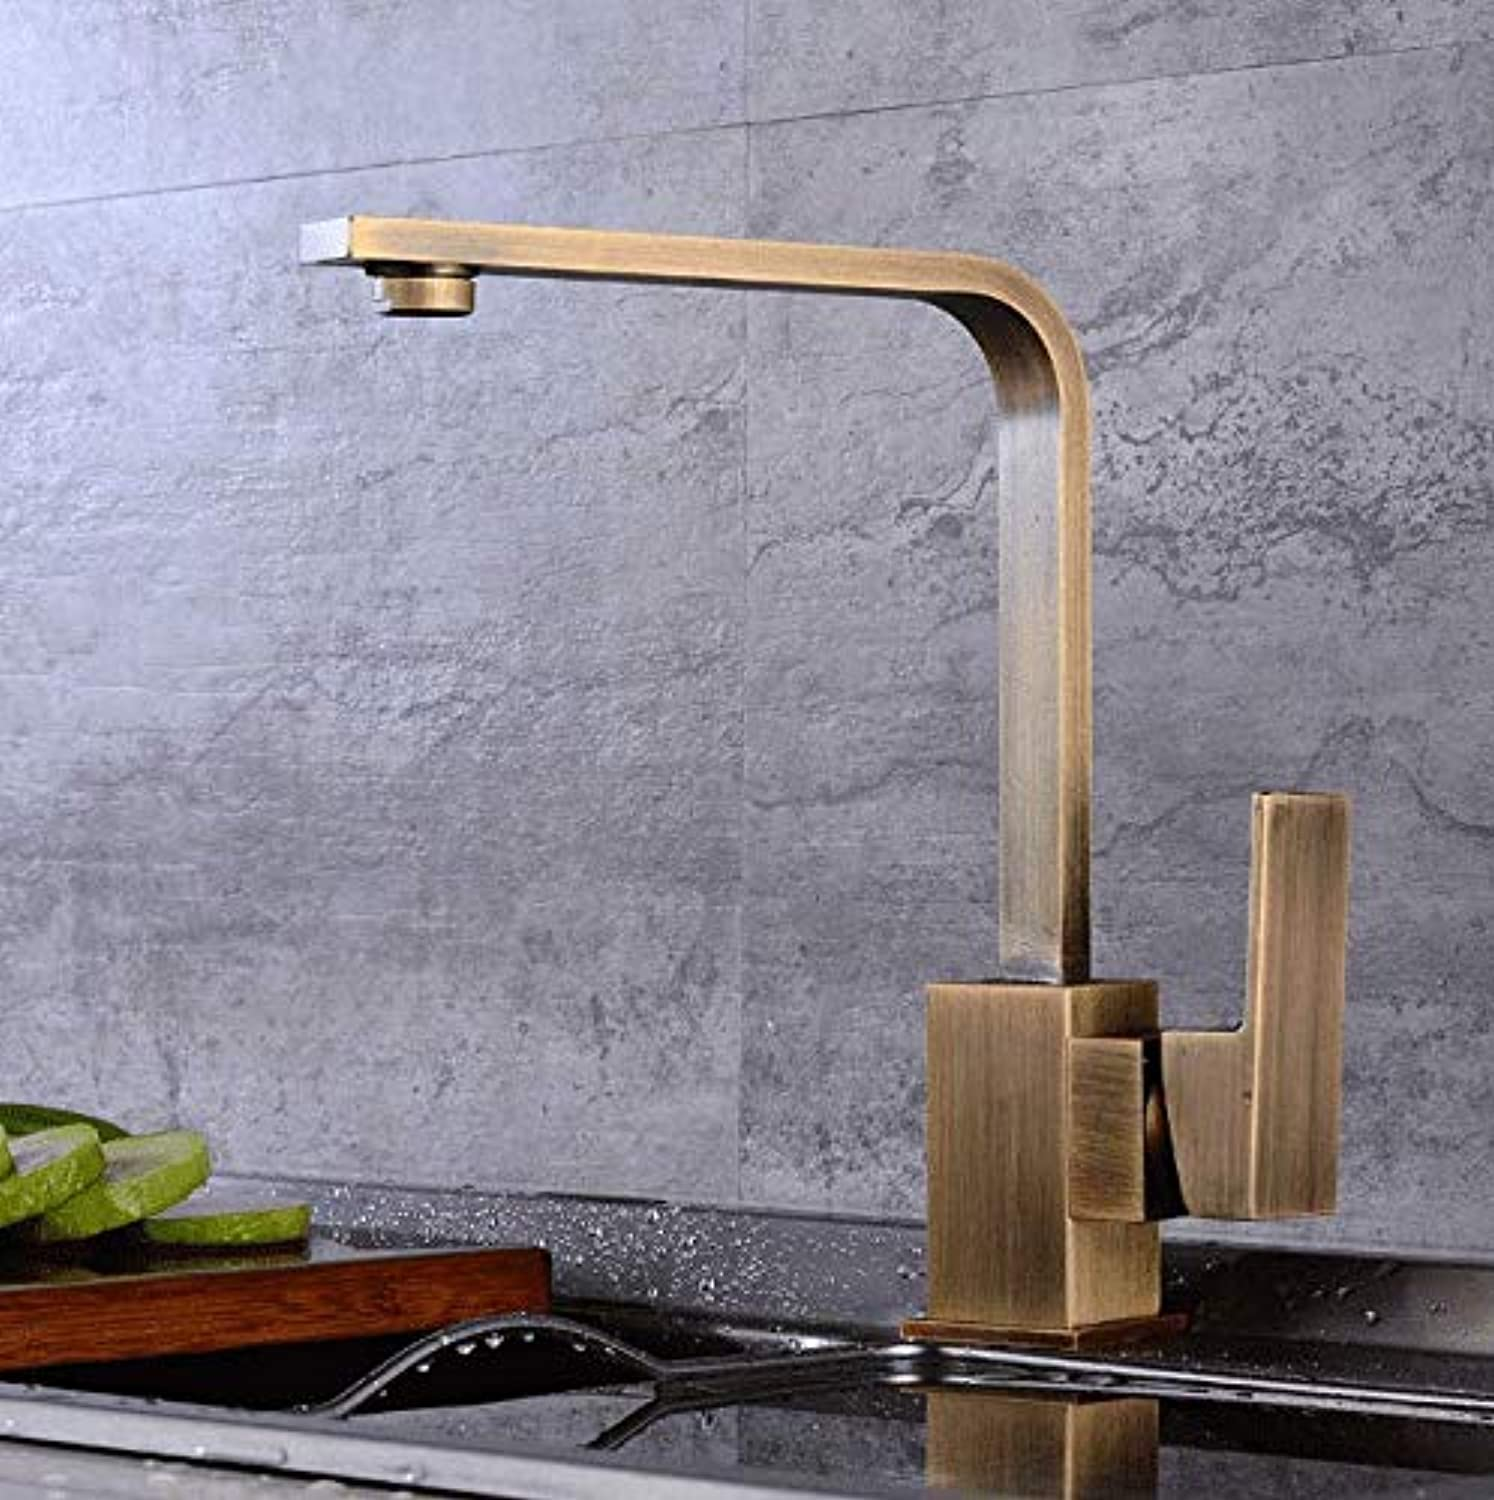 Basin Faucet Bathroom Sink Tap European Antique Hot and Cold Kitchen Faucet, Square Revolving Sink, Basin Faucet